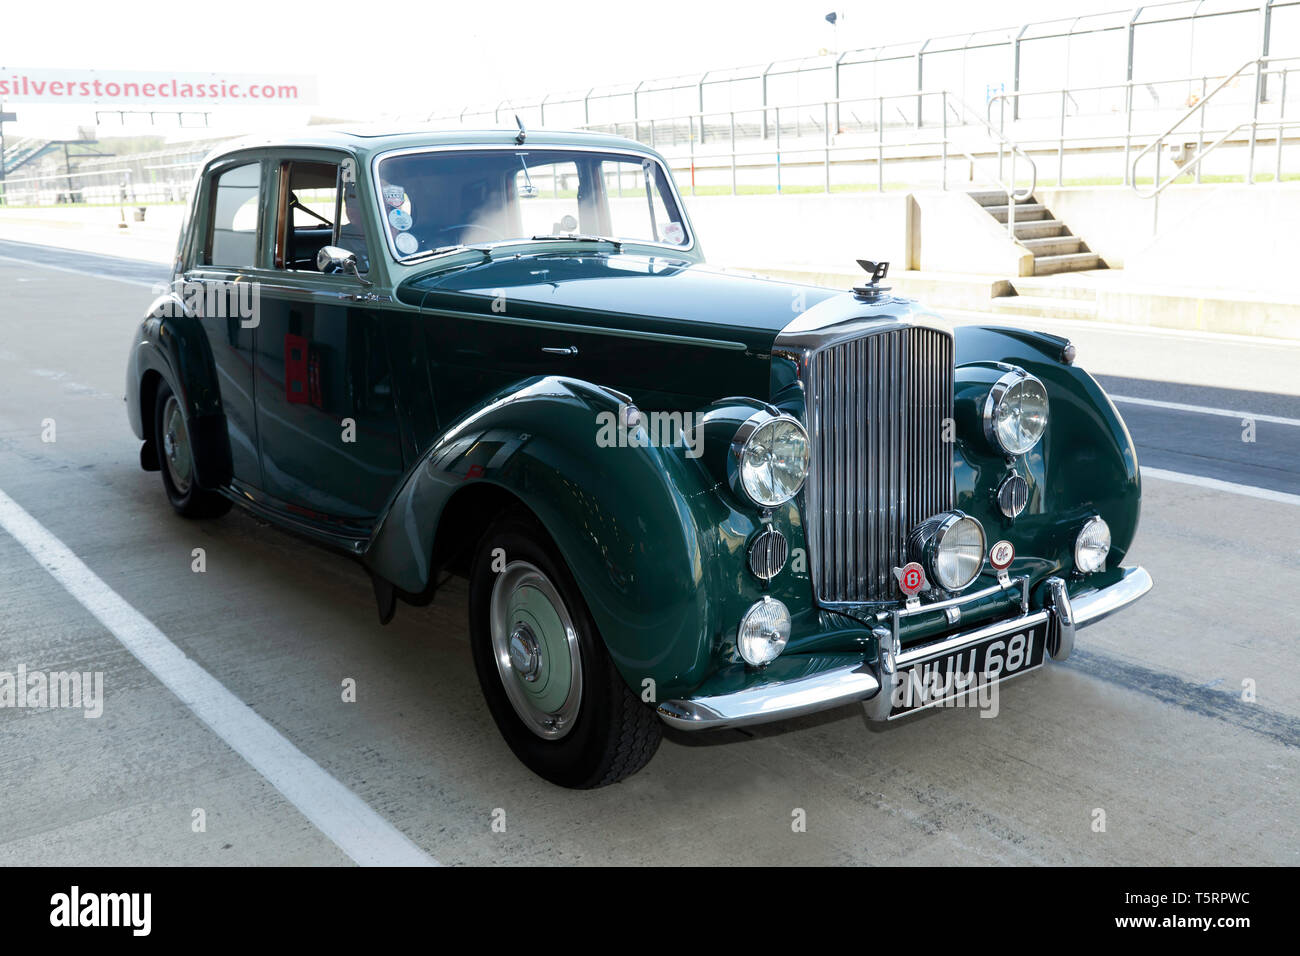 Three-quarter front view of a Green, 1953 Bentley R-Type, part of the Bentley Centenary Celebrations at the 2019 Silverstone Classic Media Day - Stock Image